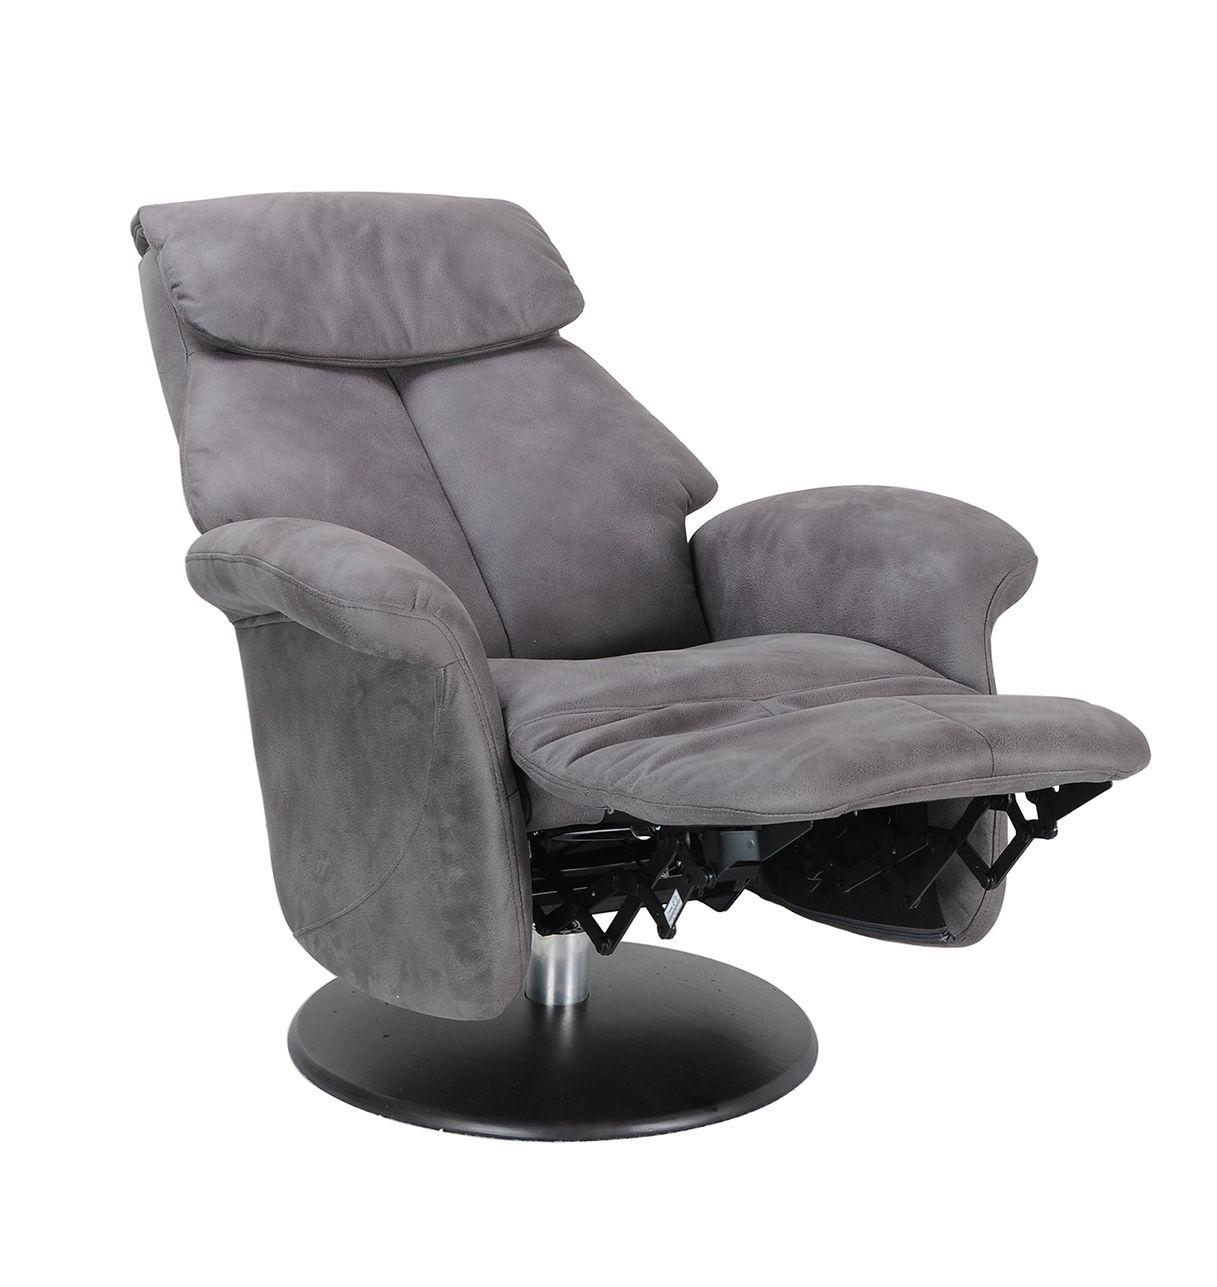 Leather and Microstar Manual Relaxation Amrchair - BREPHOS Relaxation armchair